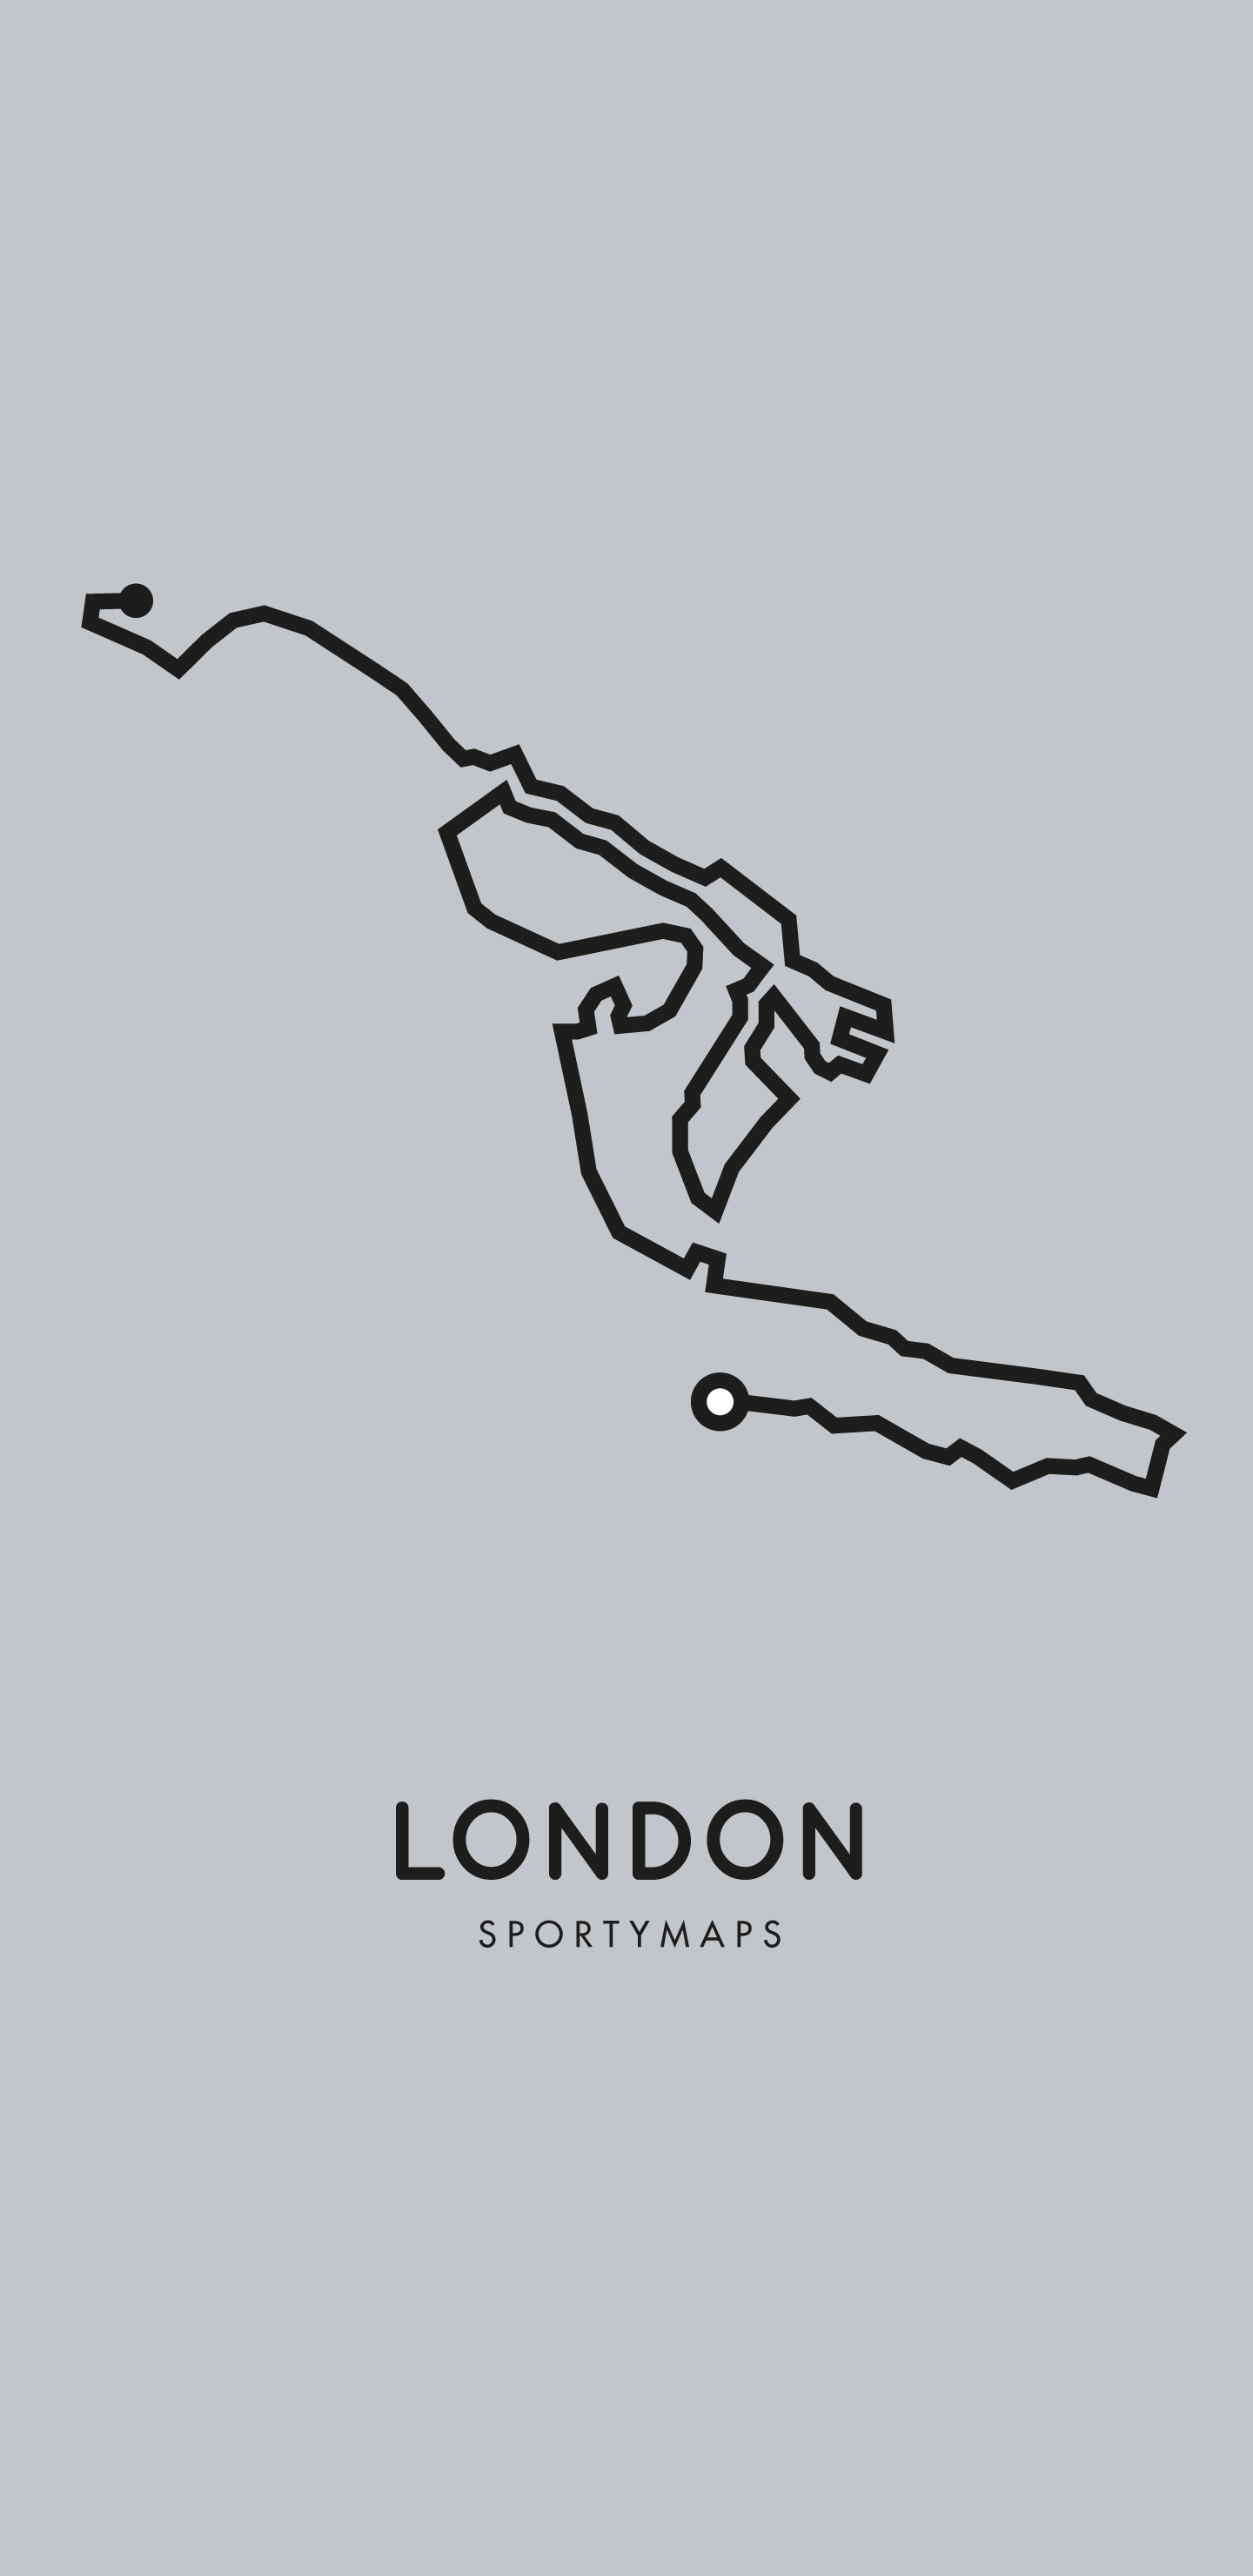 Sportymaps-London-marathon-gray